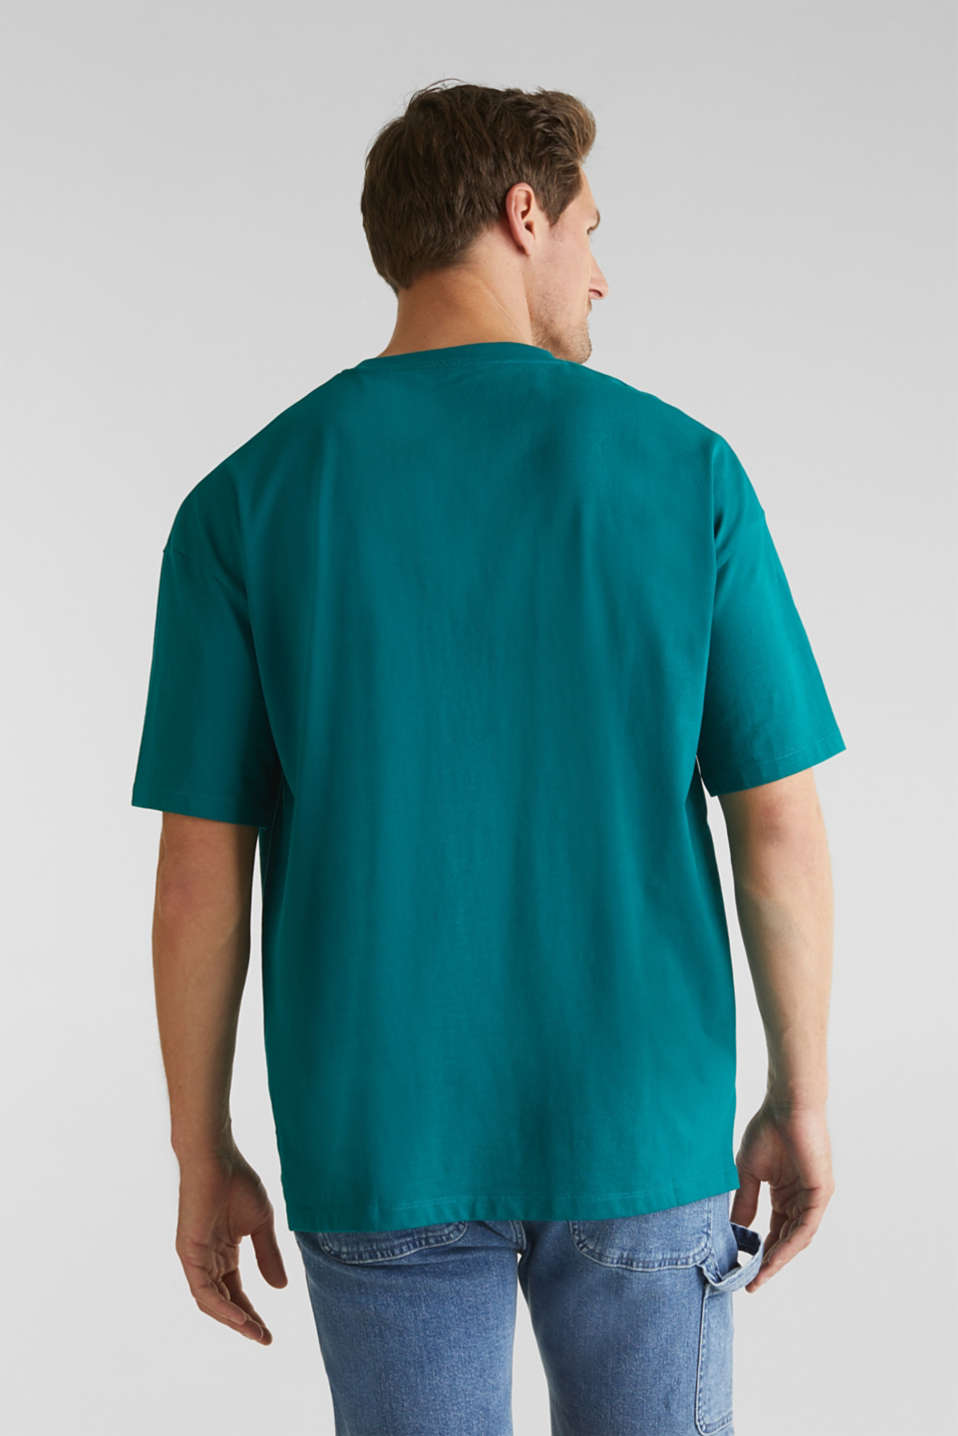 Oversized top in cotton jersey, BOTTLE GREEN, detail image number 3